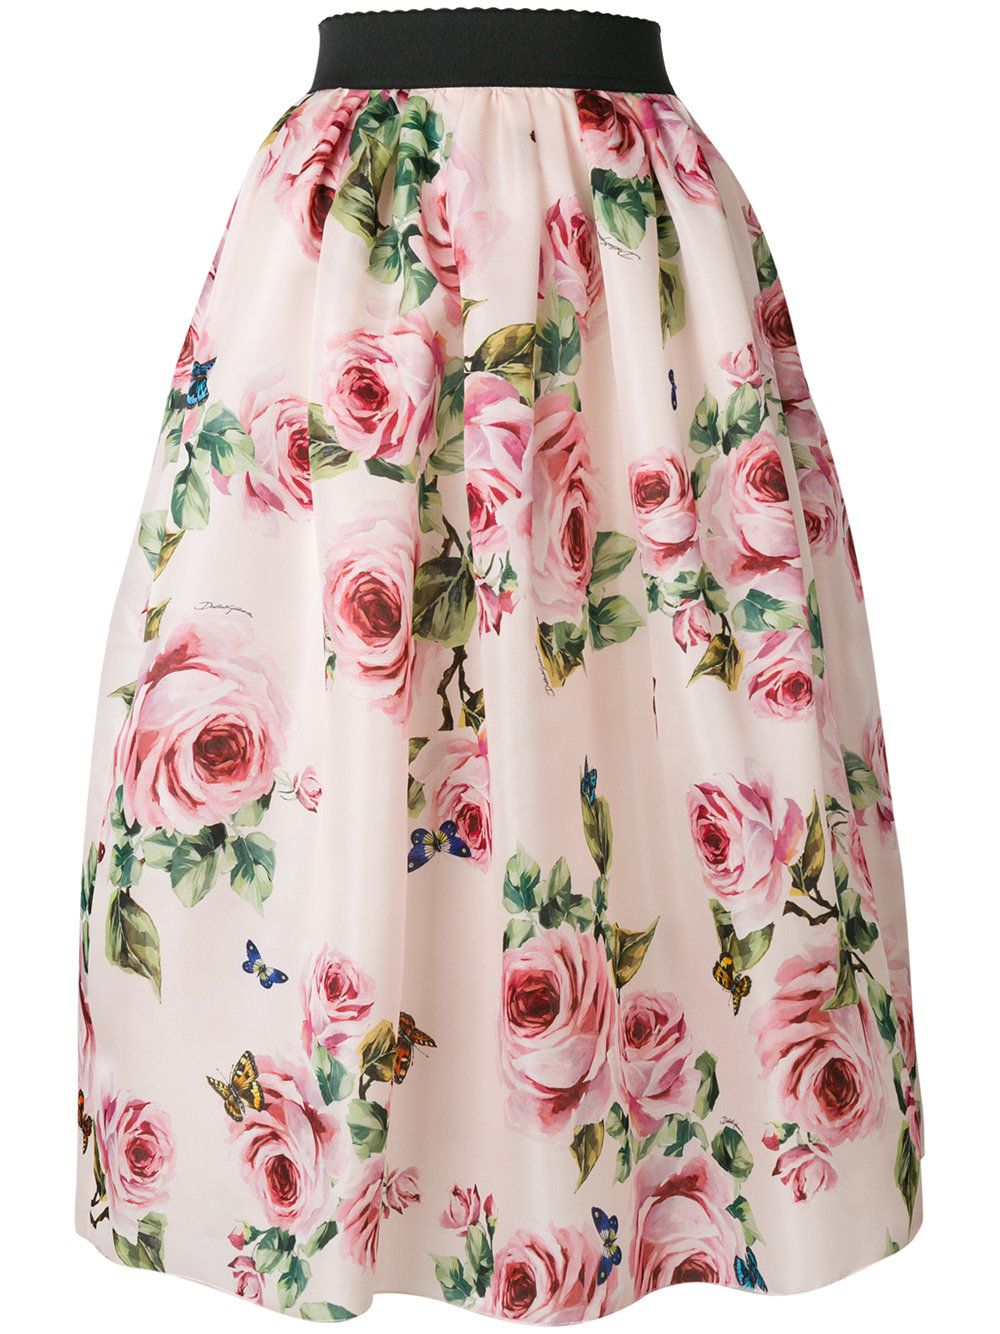 183e8e27a Dolce & Gabbana rose print full skirt | Saias/ Skirts II in 2019 ...